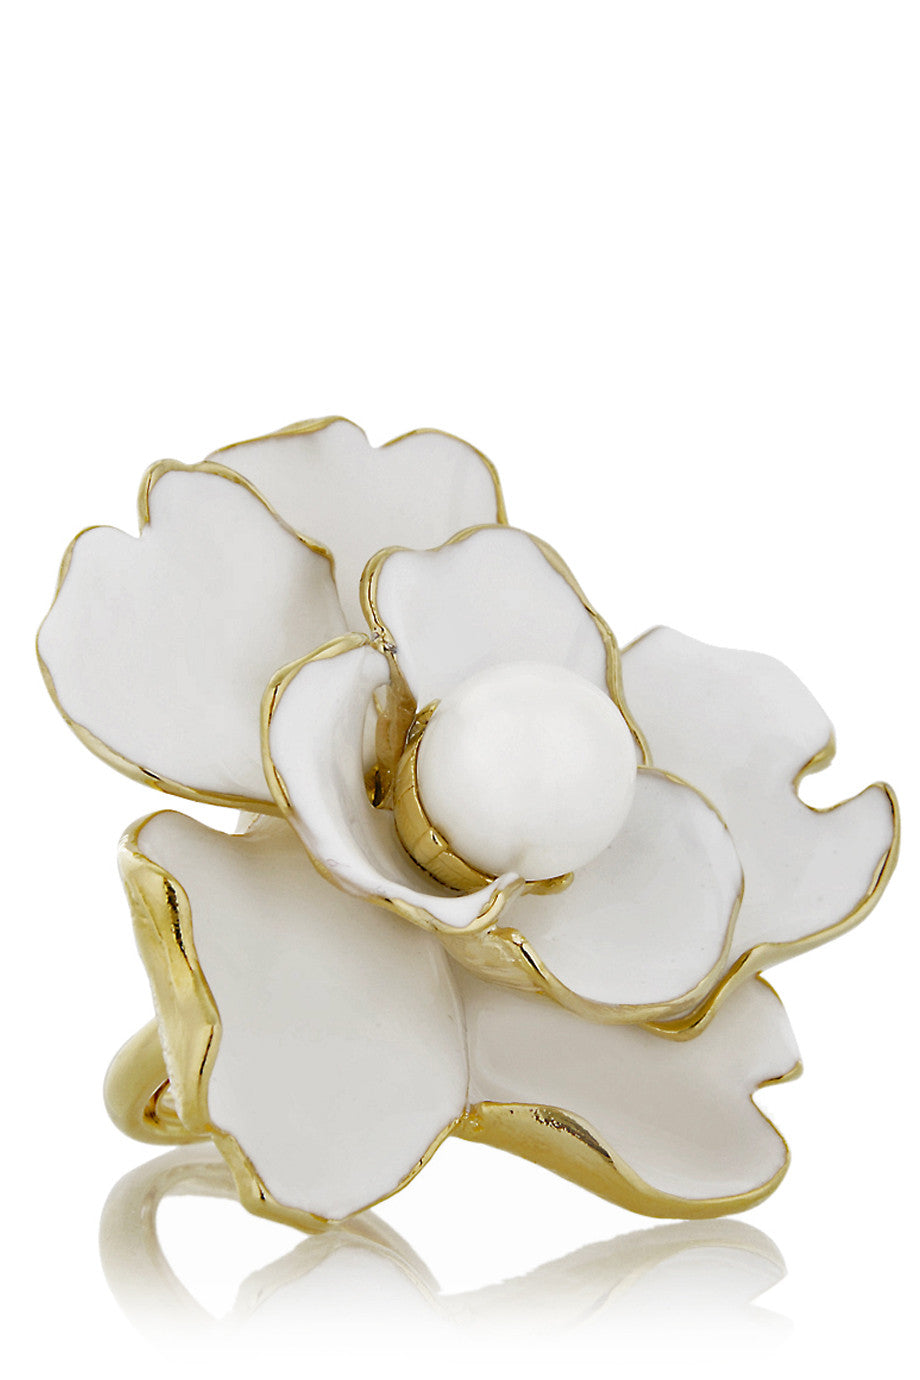 Kenneth Jay Lane Camelia White Flower Ring Pret A Beaute